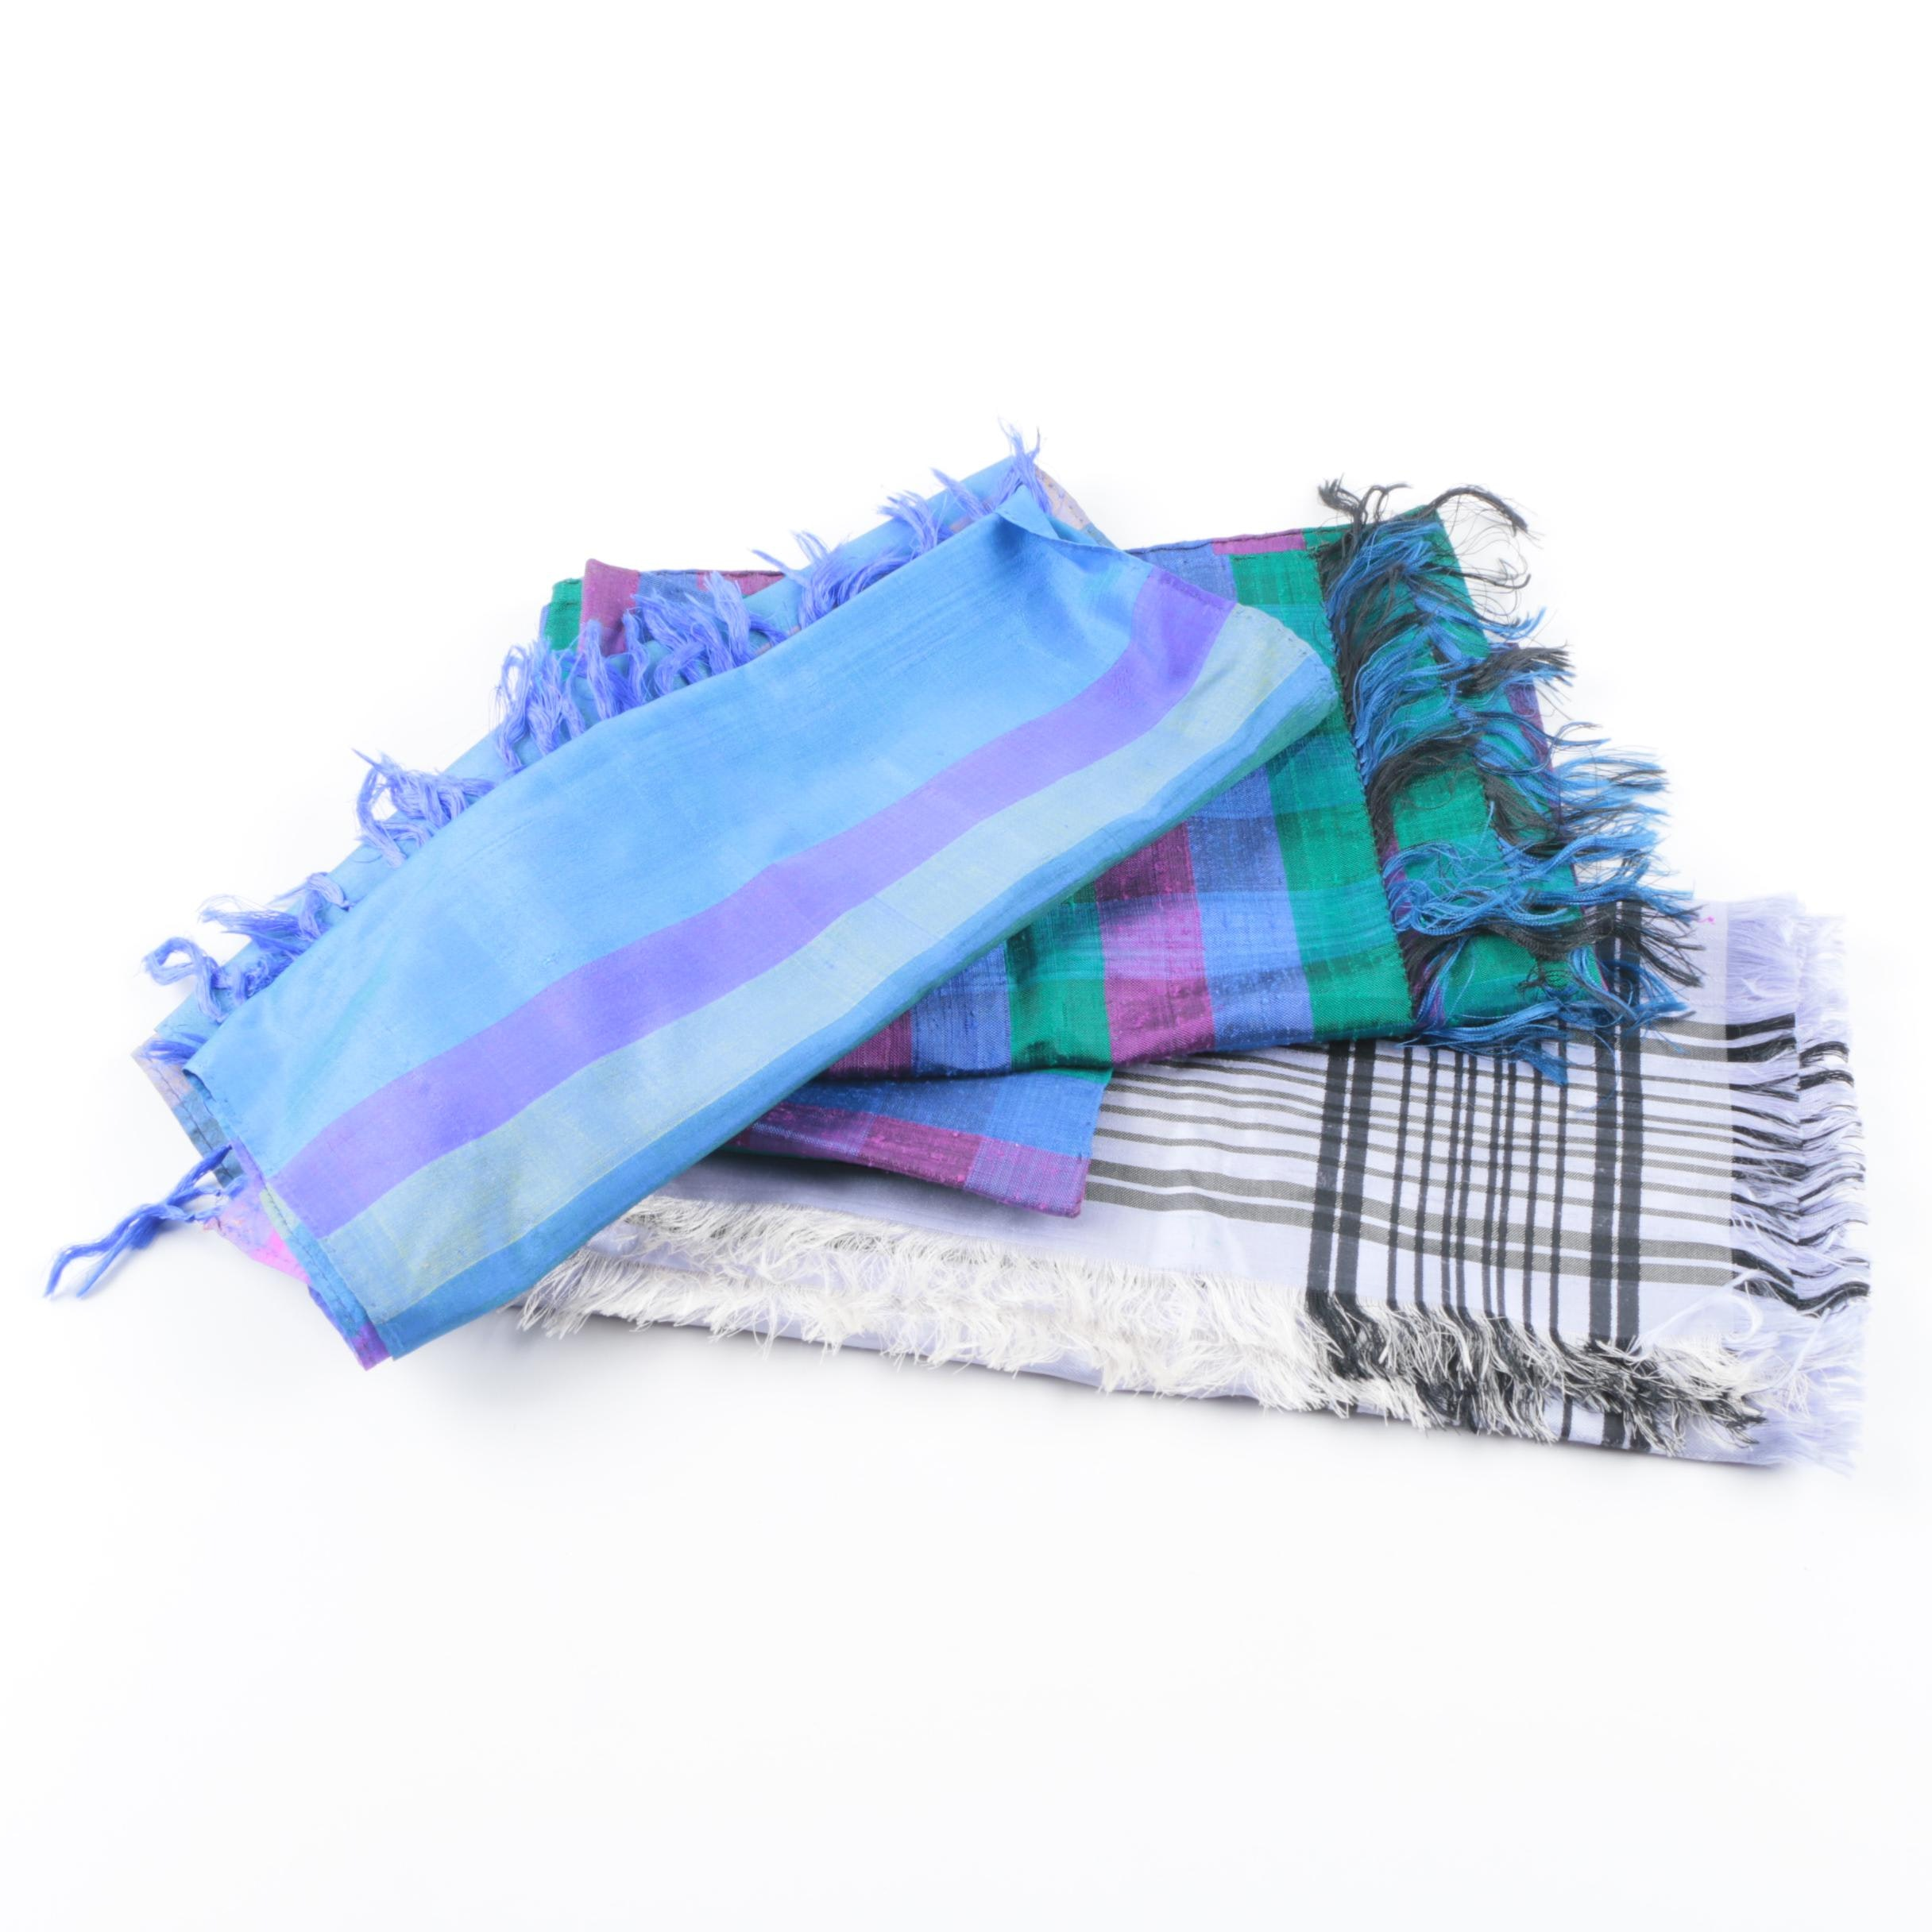 Plaid Scarves Including a Pure Silk Scarf, Hand-Loomed in India